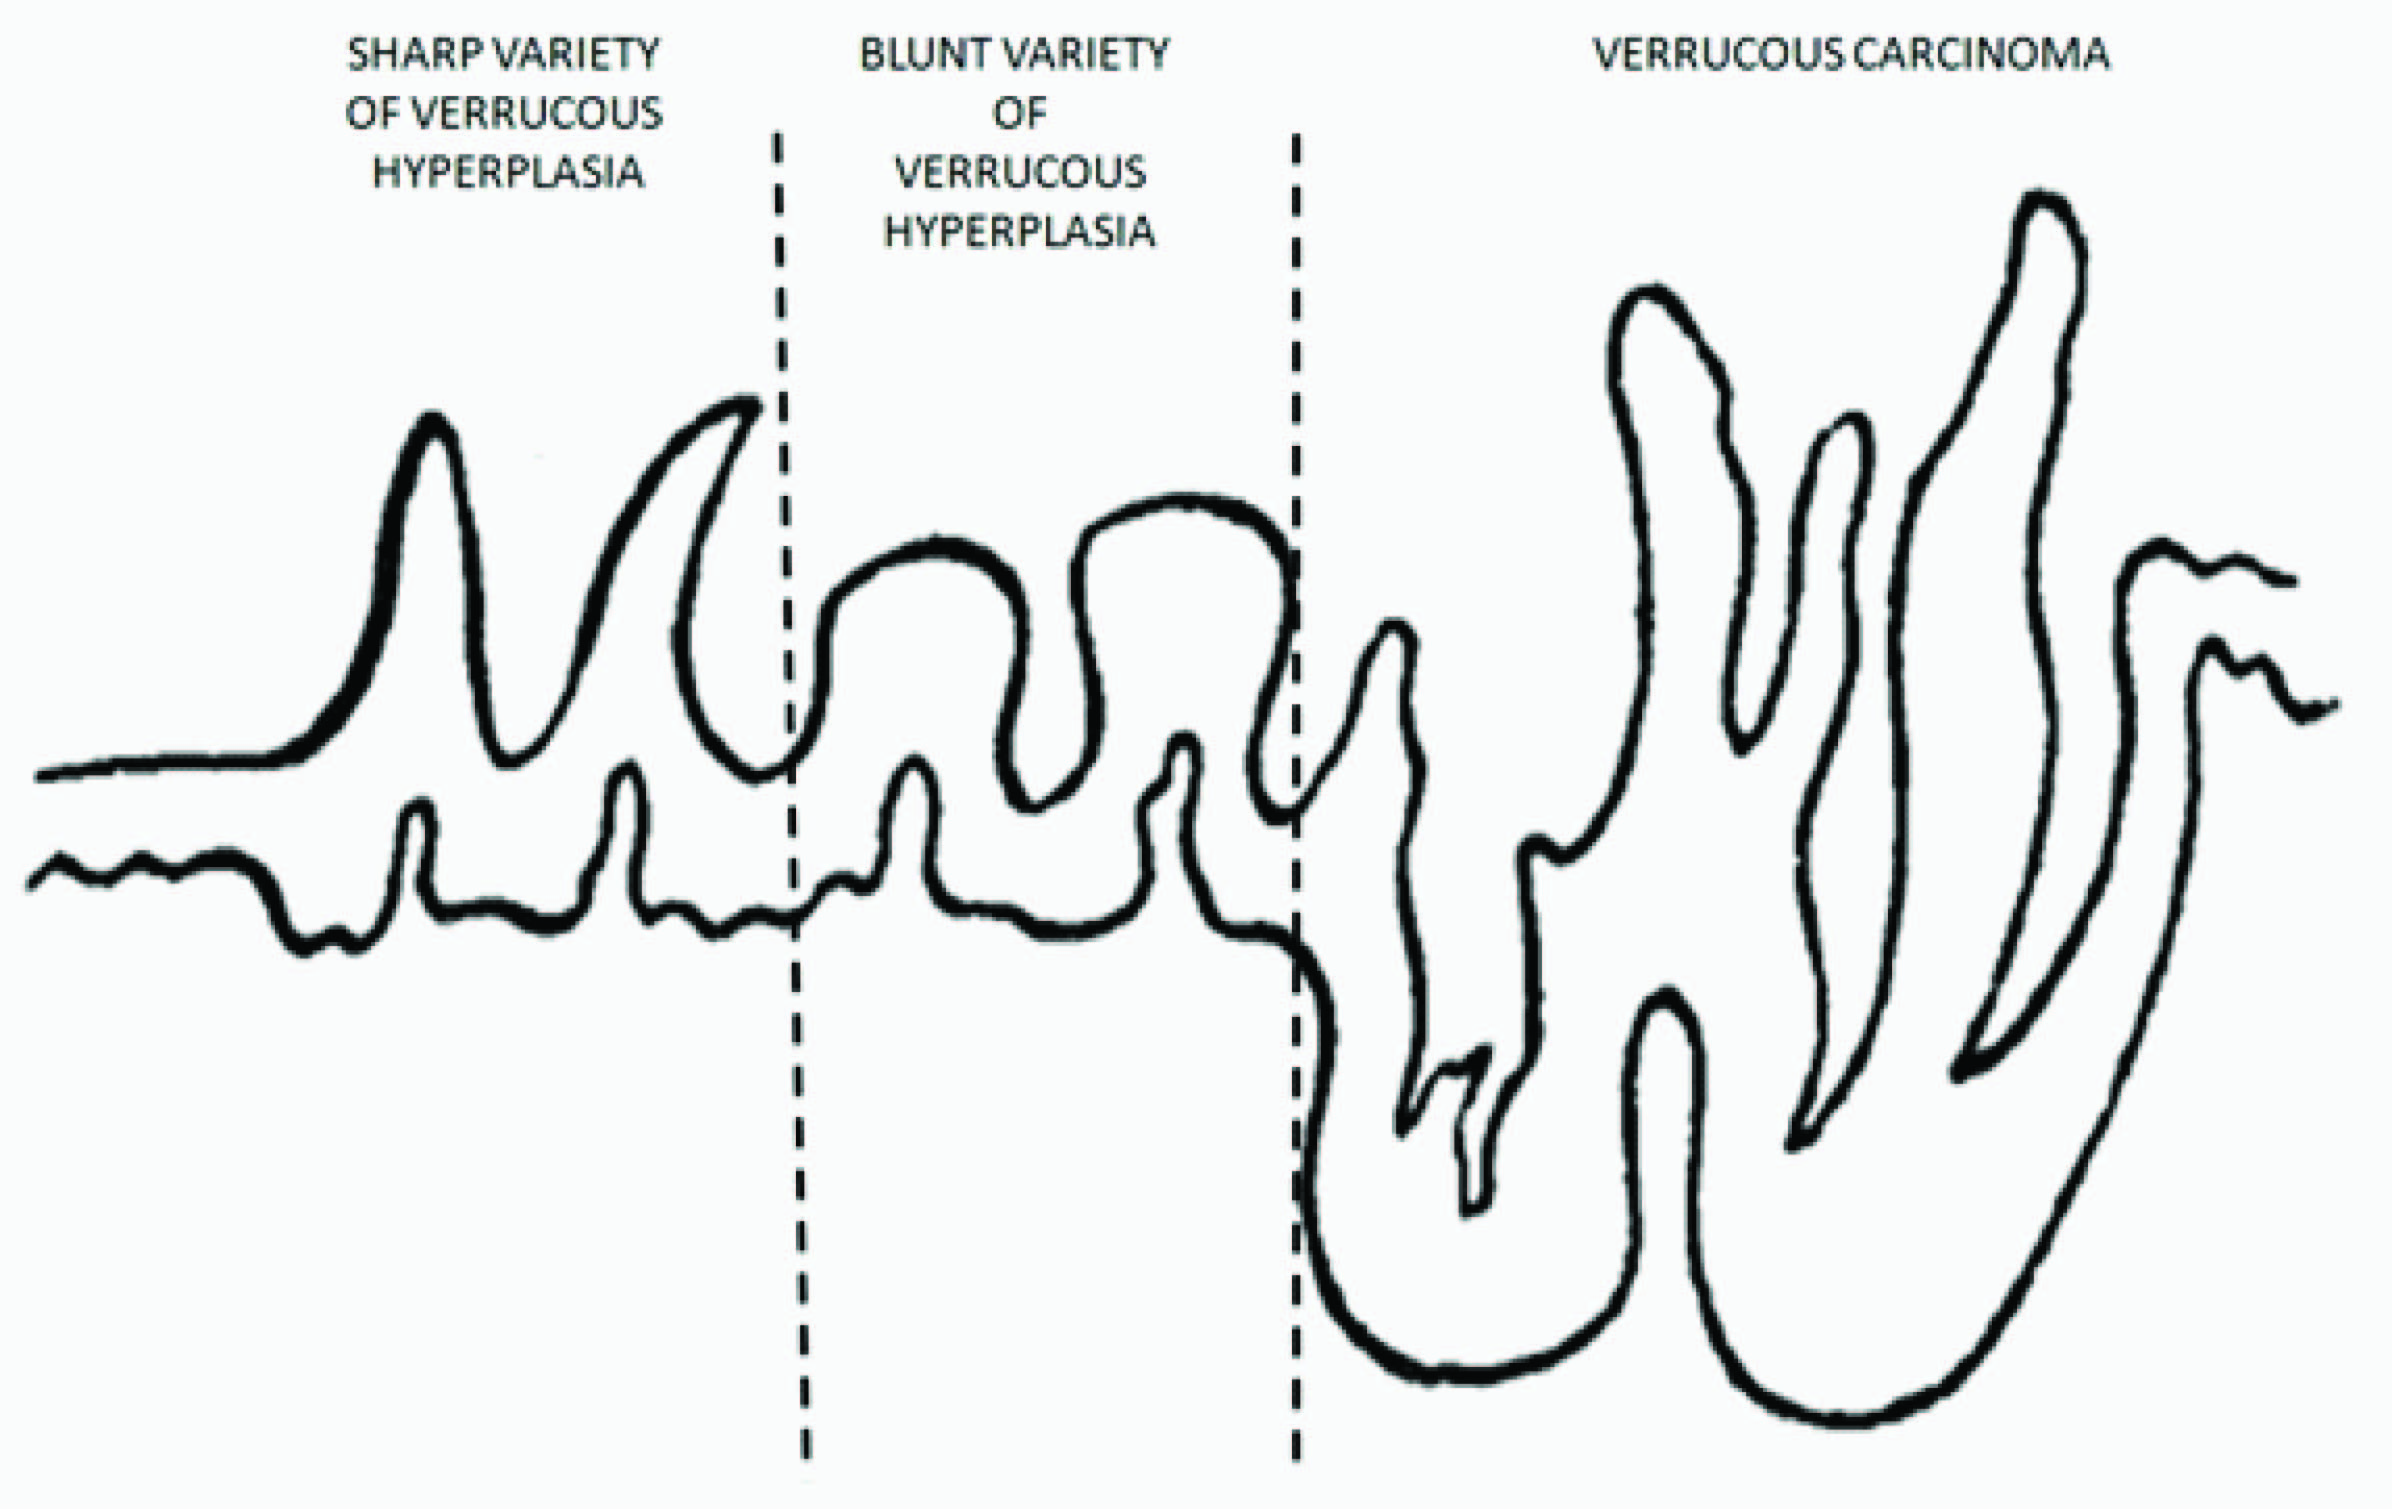 Diagram showing main histological difference between vh and vc